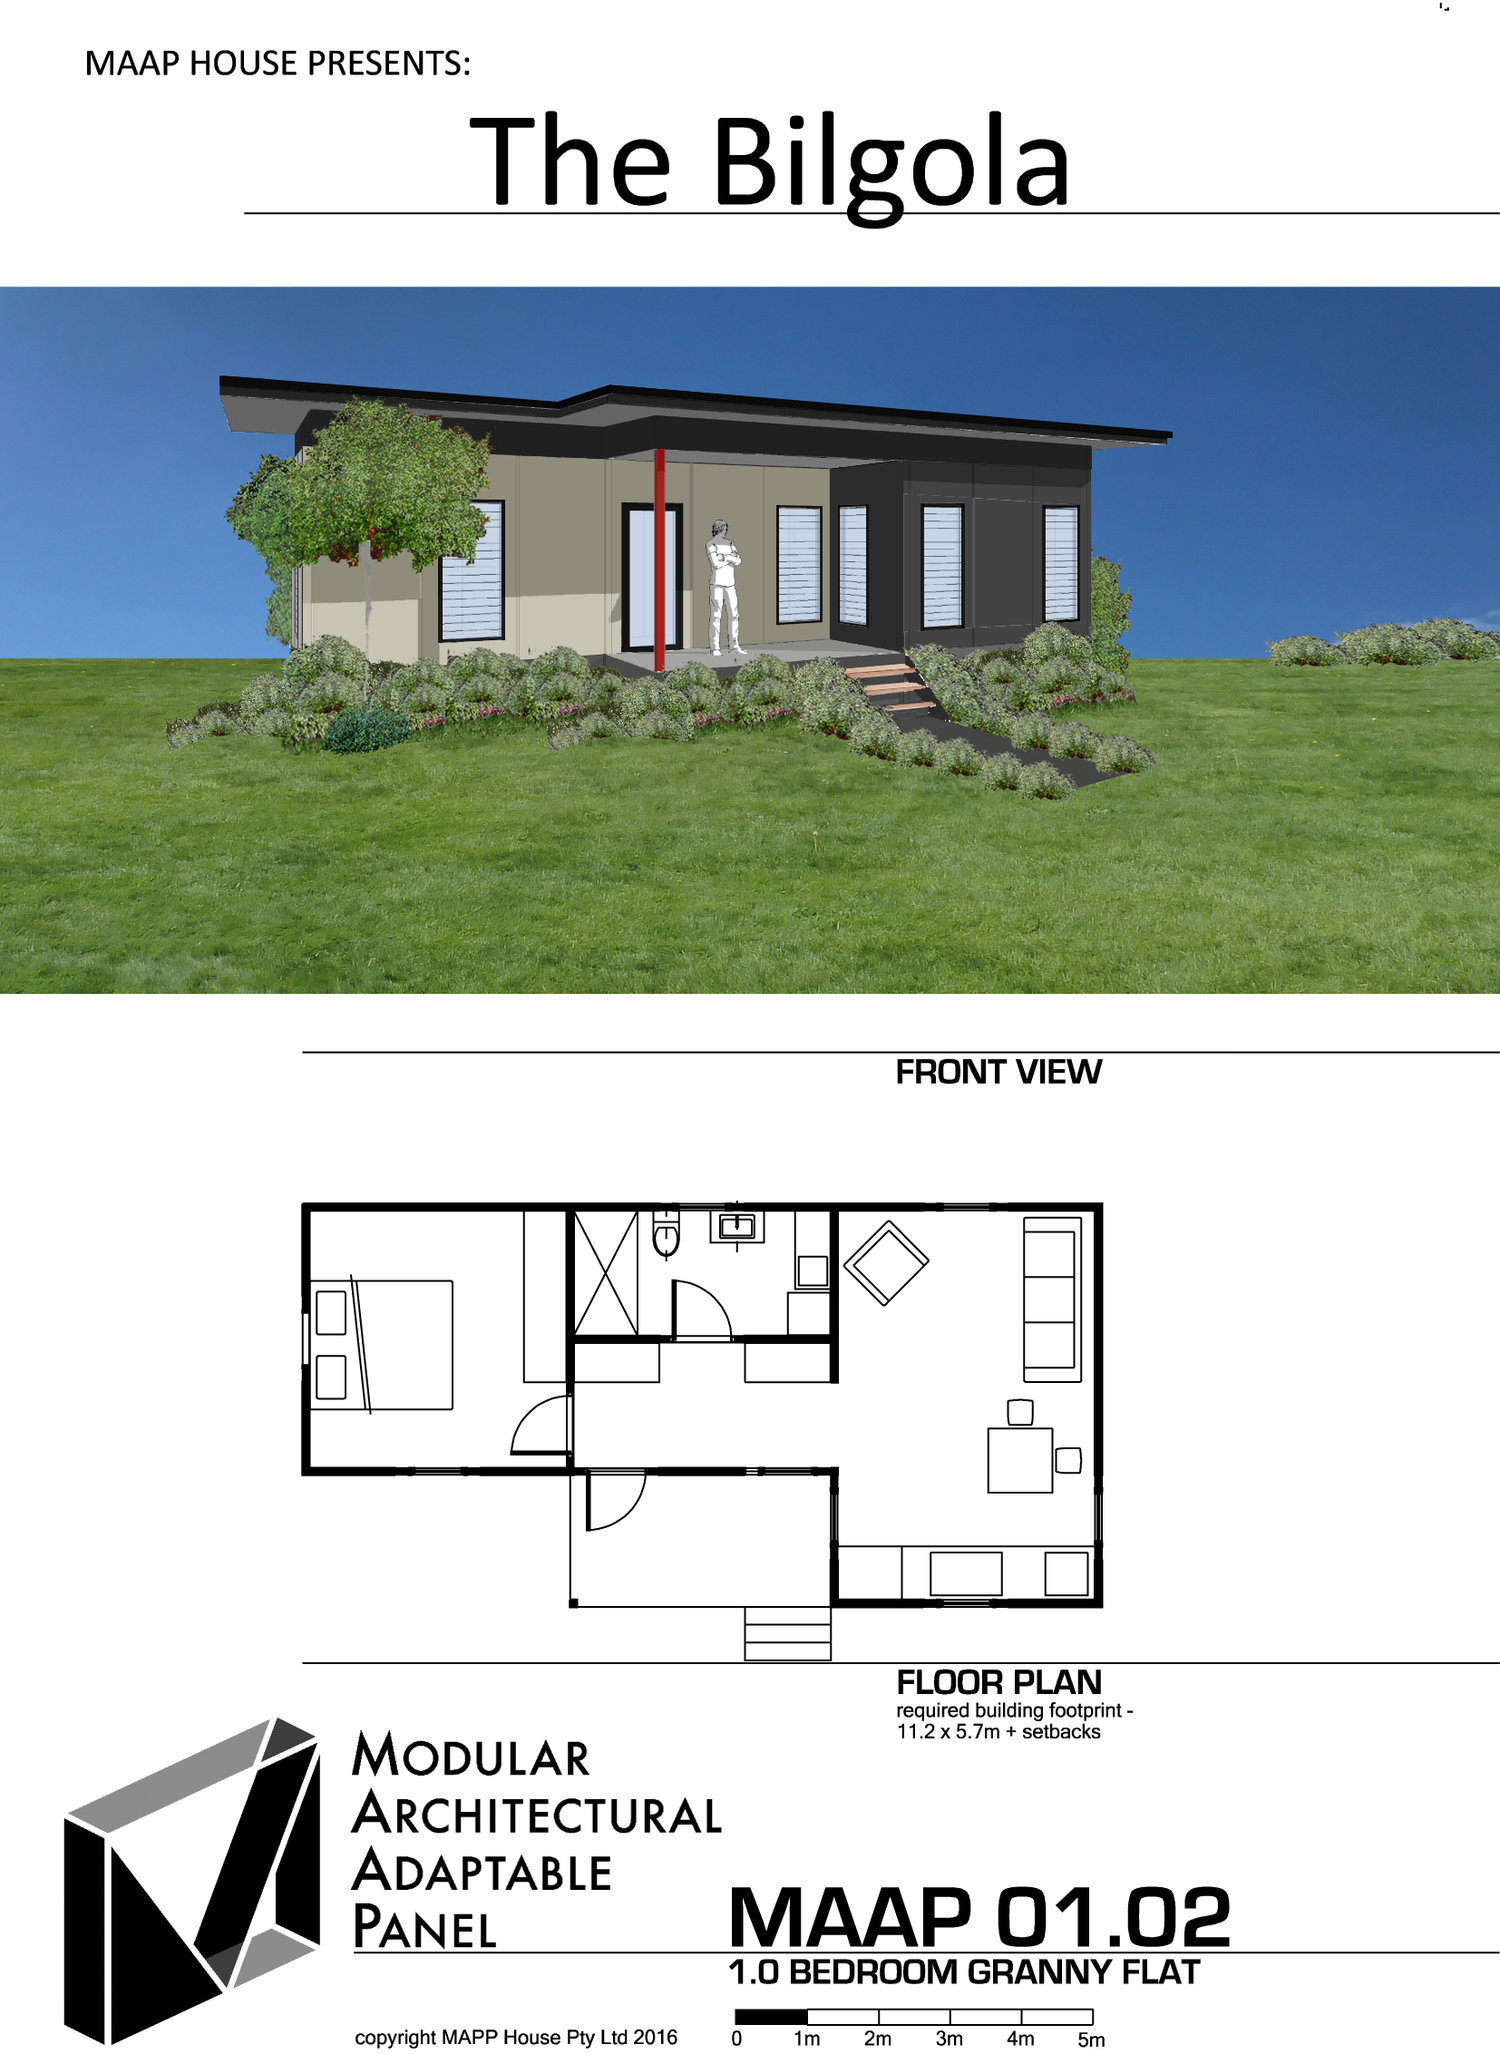 Granny Flat Designs Plans And Prices MAAP House - Granny flat 2 bedroom designs